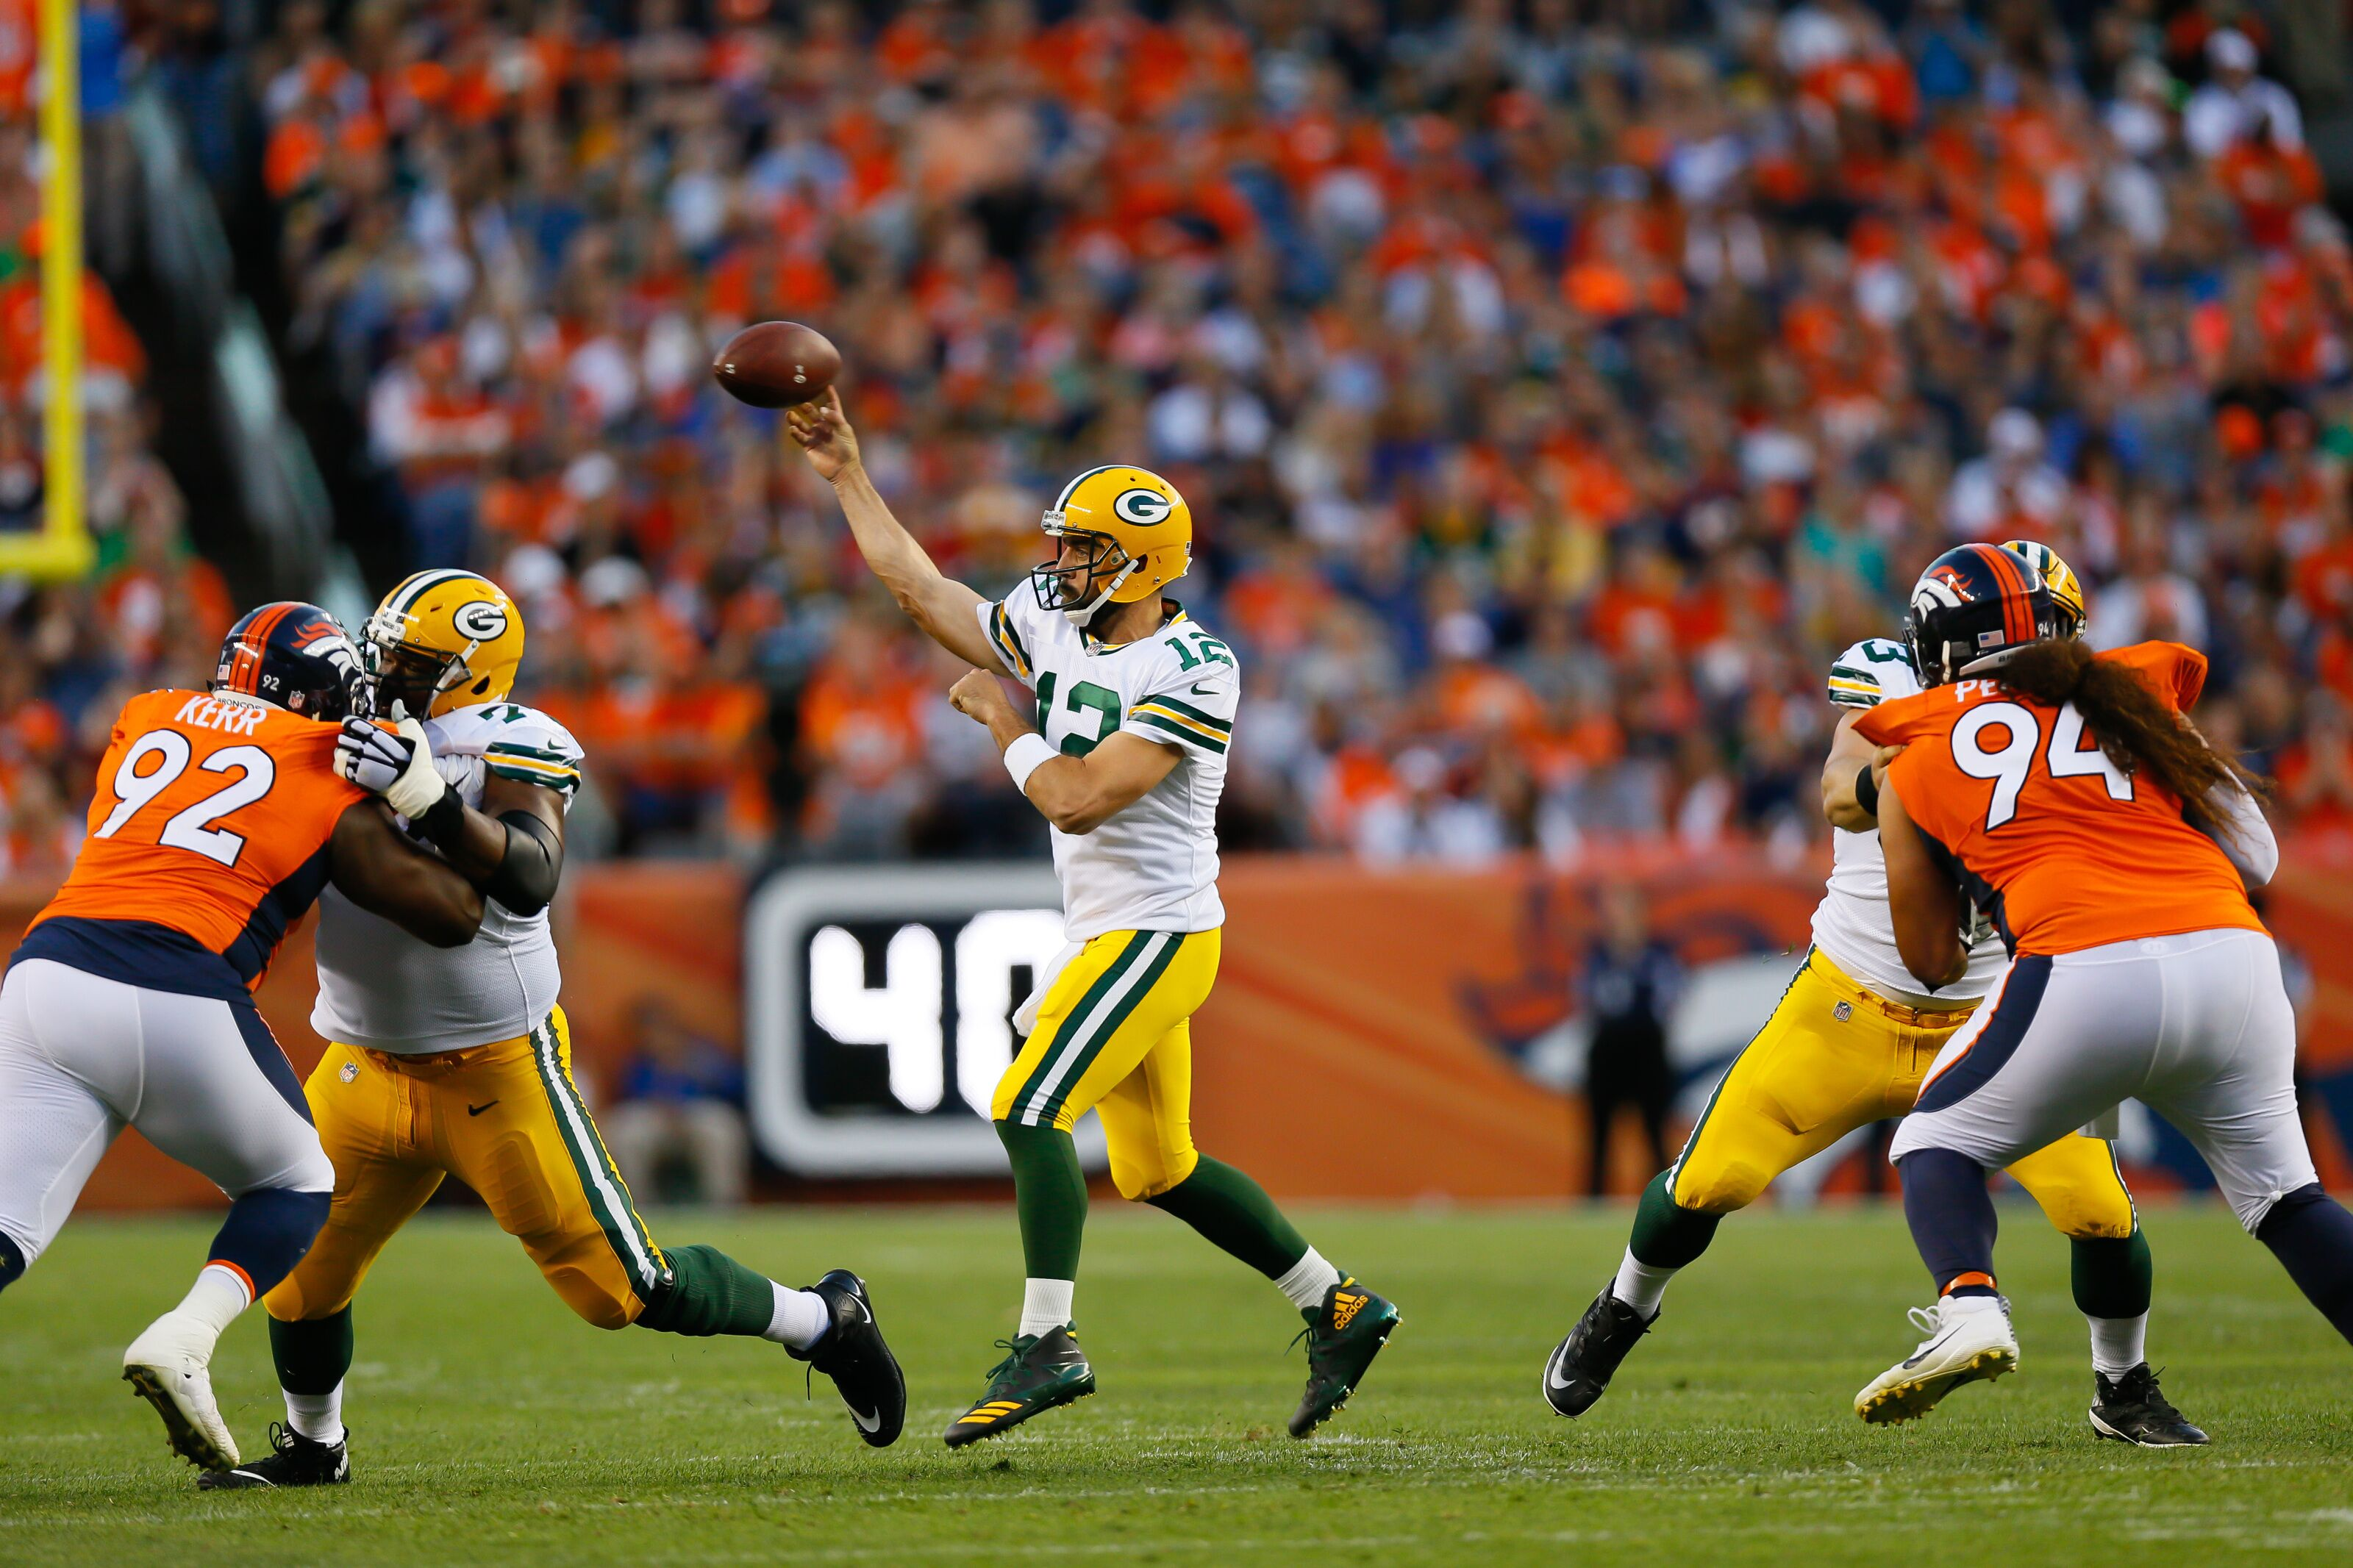 Green Bay Packers 2019 opponent preview: Denver Broncos